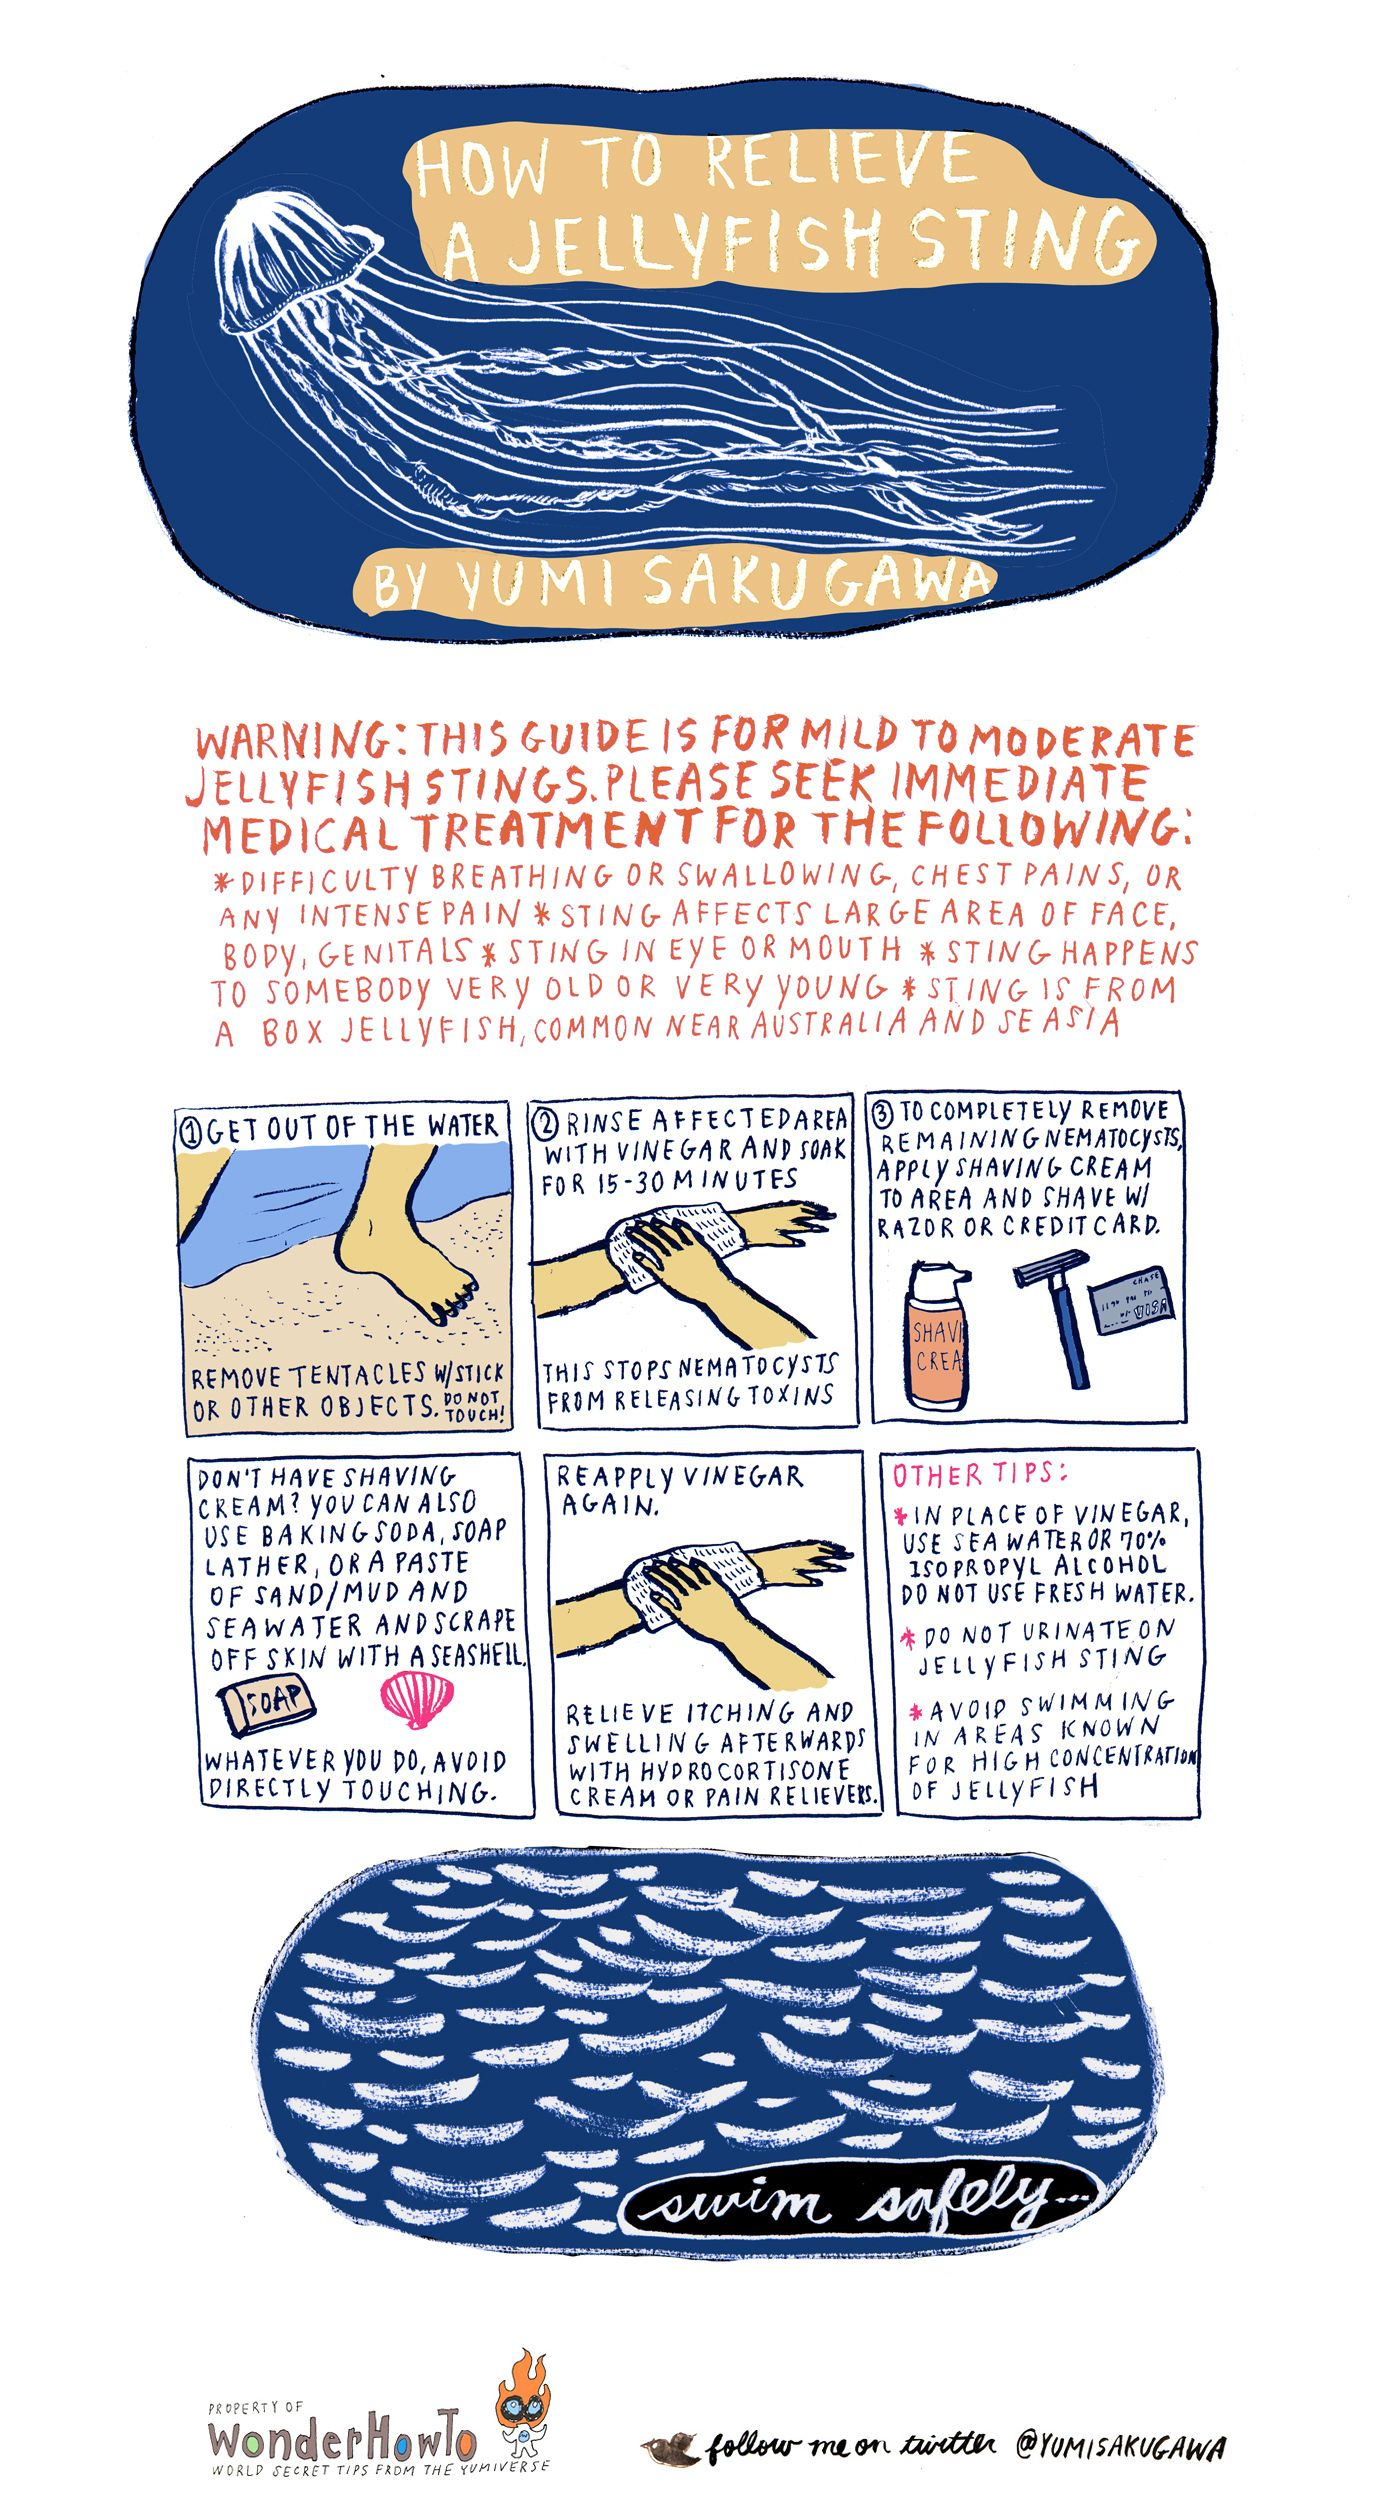 How To Relieve A Jellyfish Sting Jellyfish Sting Jellyfish